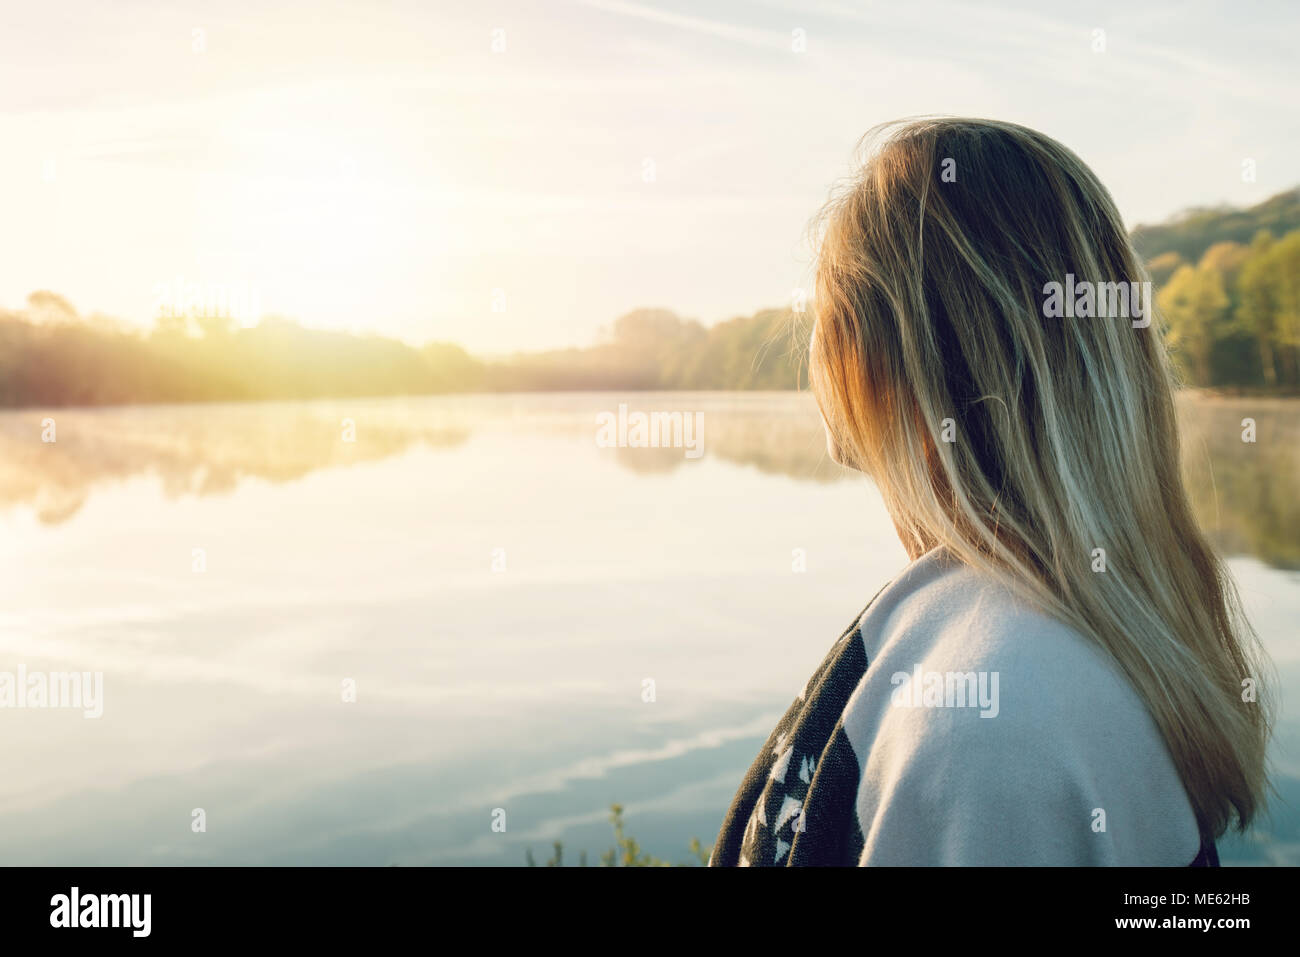 Young woman contemplating nature by the lake at sunrise, springtime, France, Europe. People travel relaxation in nature concept. Tones image Stock Photo